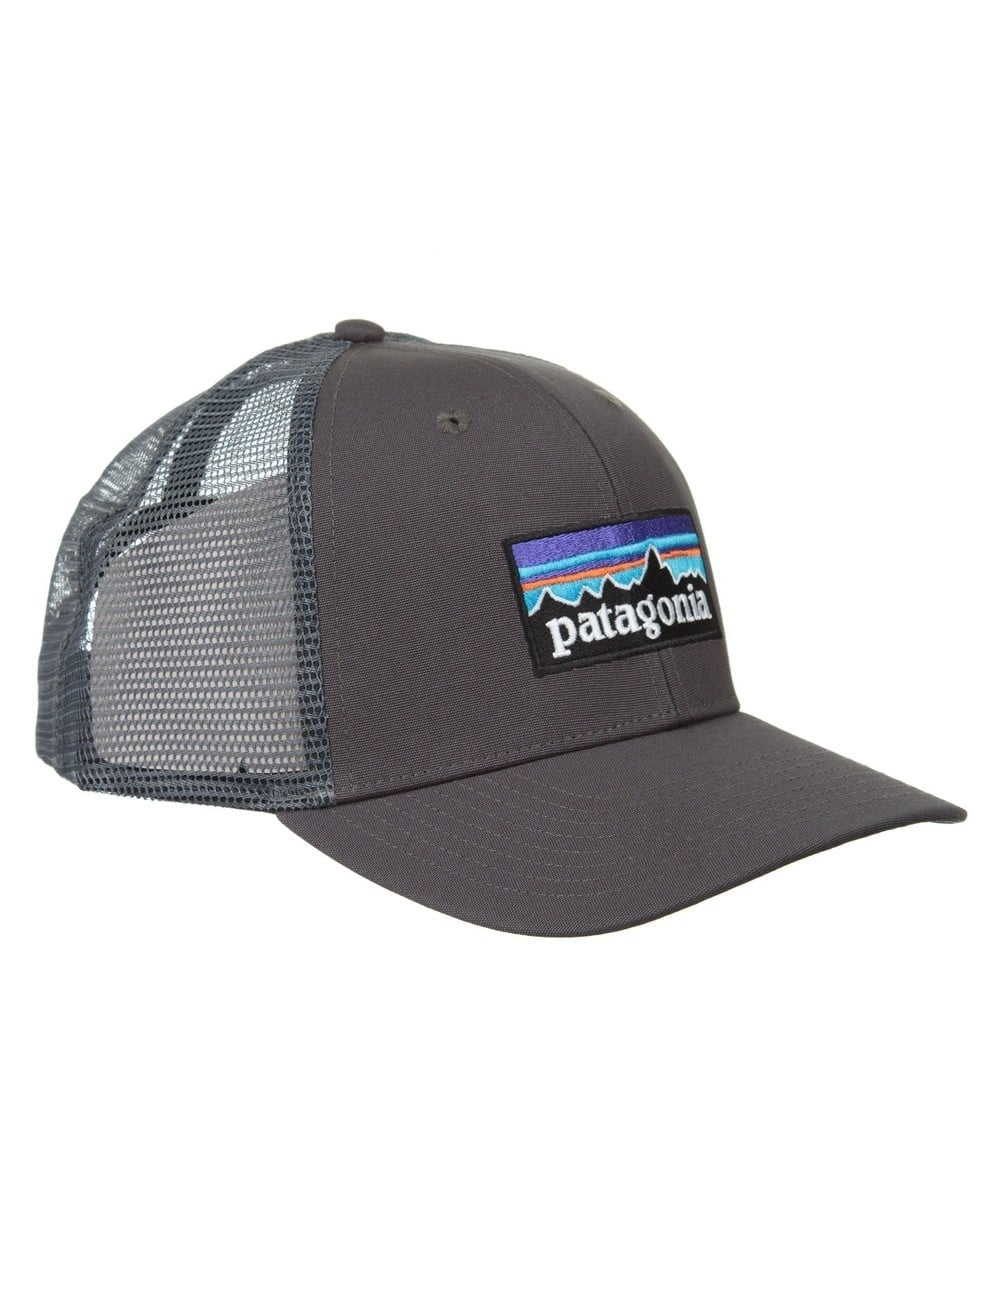 4179c17d8cd Patagonia P-6 Logo Trucker Hat - Forge Grey - Hat Shop from Fat ...